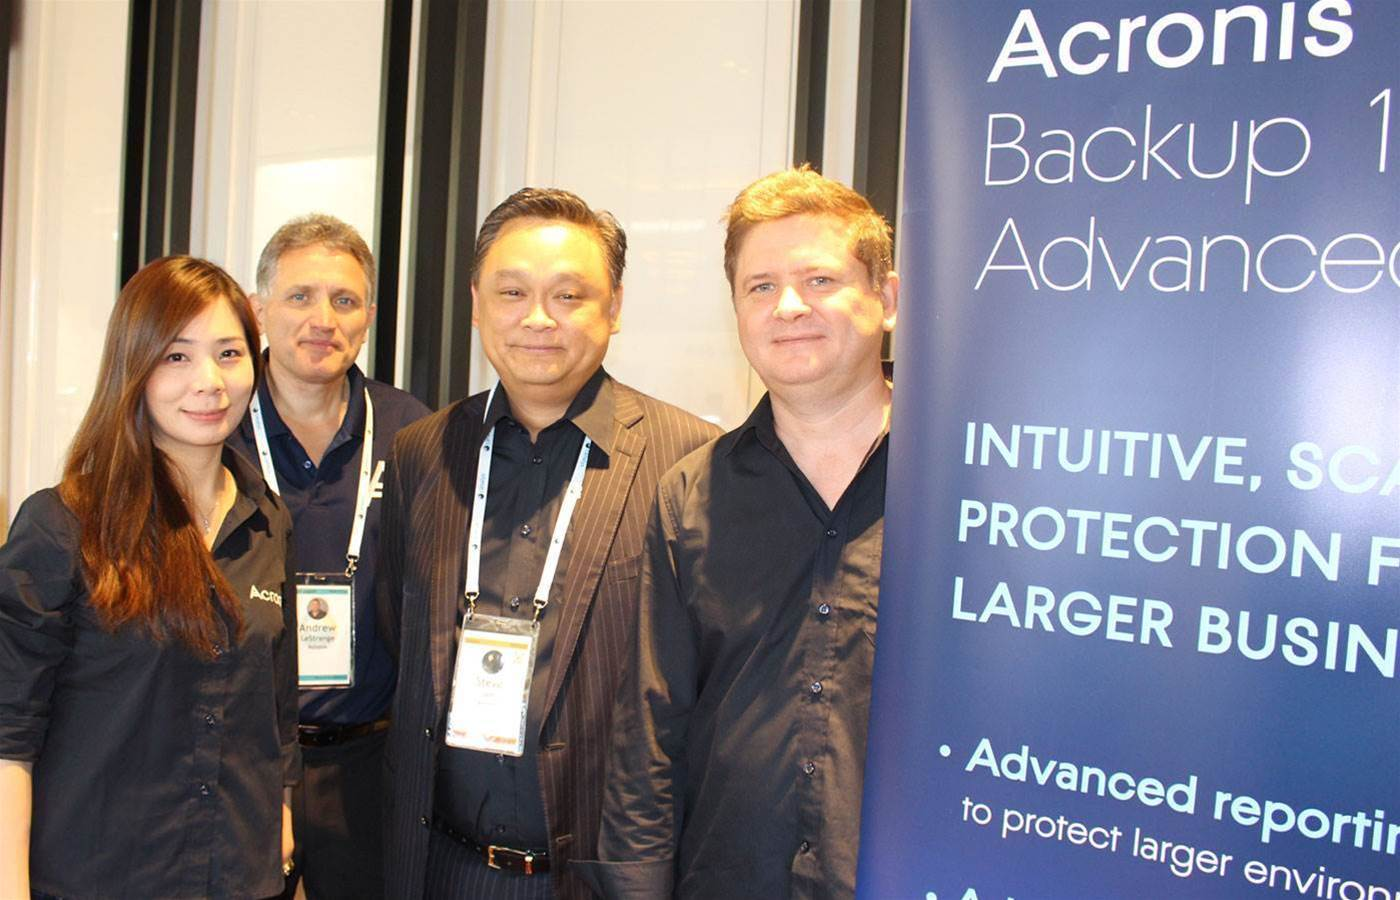 Acronis hires Julie Malcolm and Edith Kan to run channel team